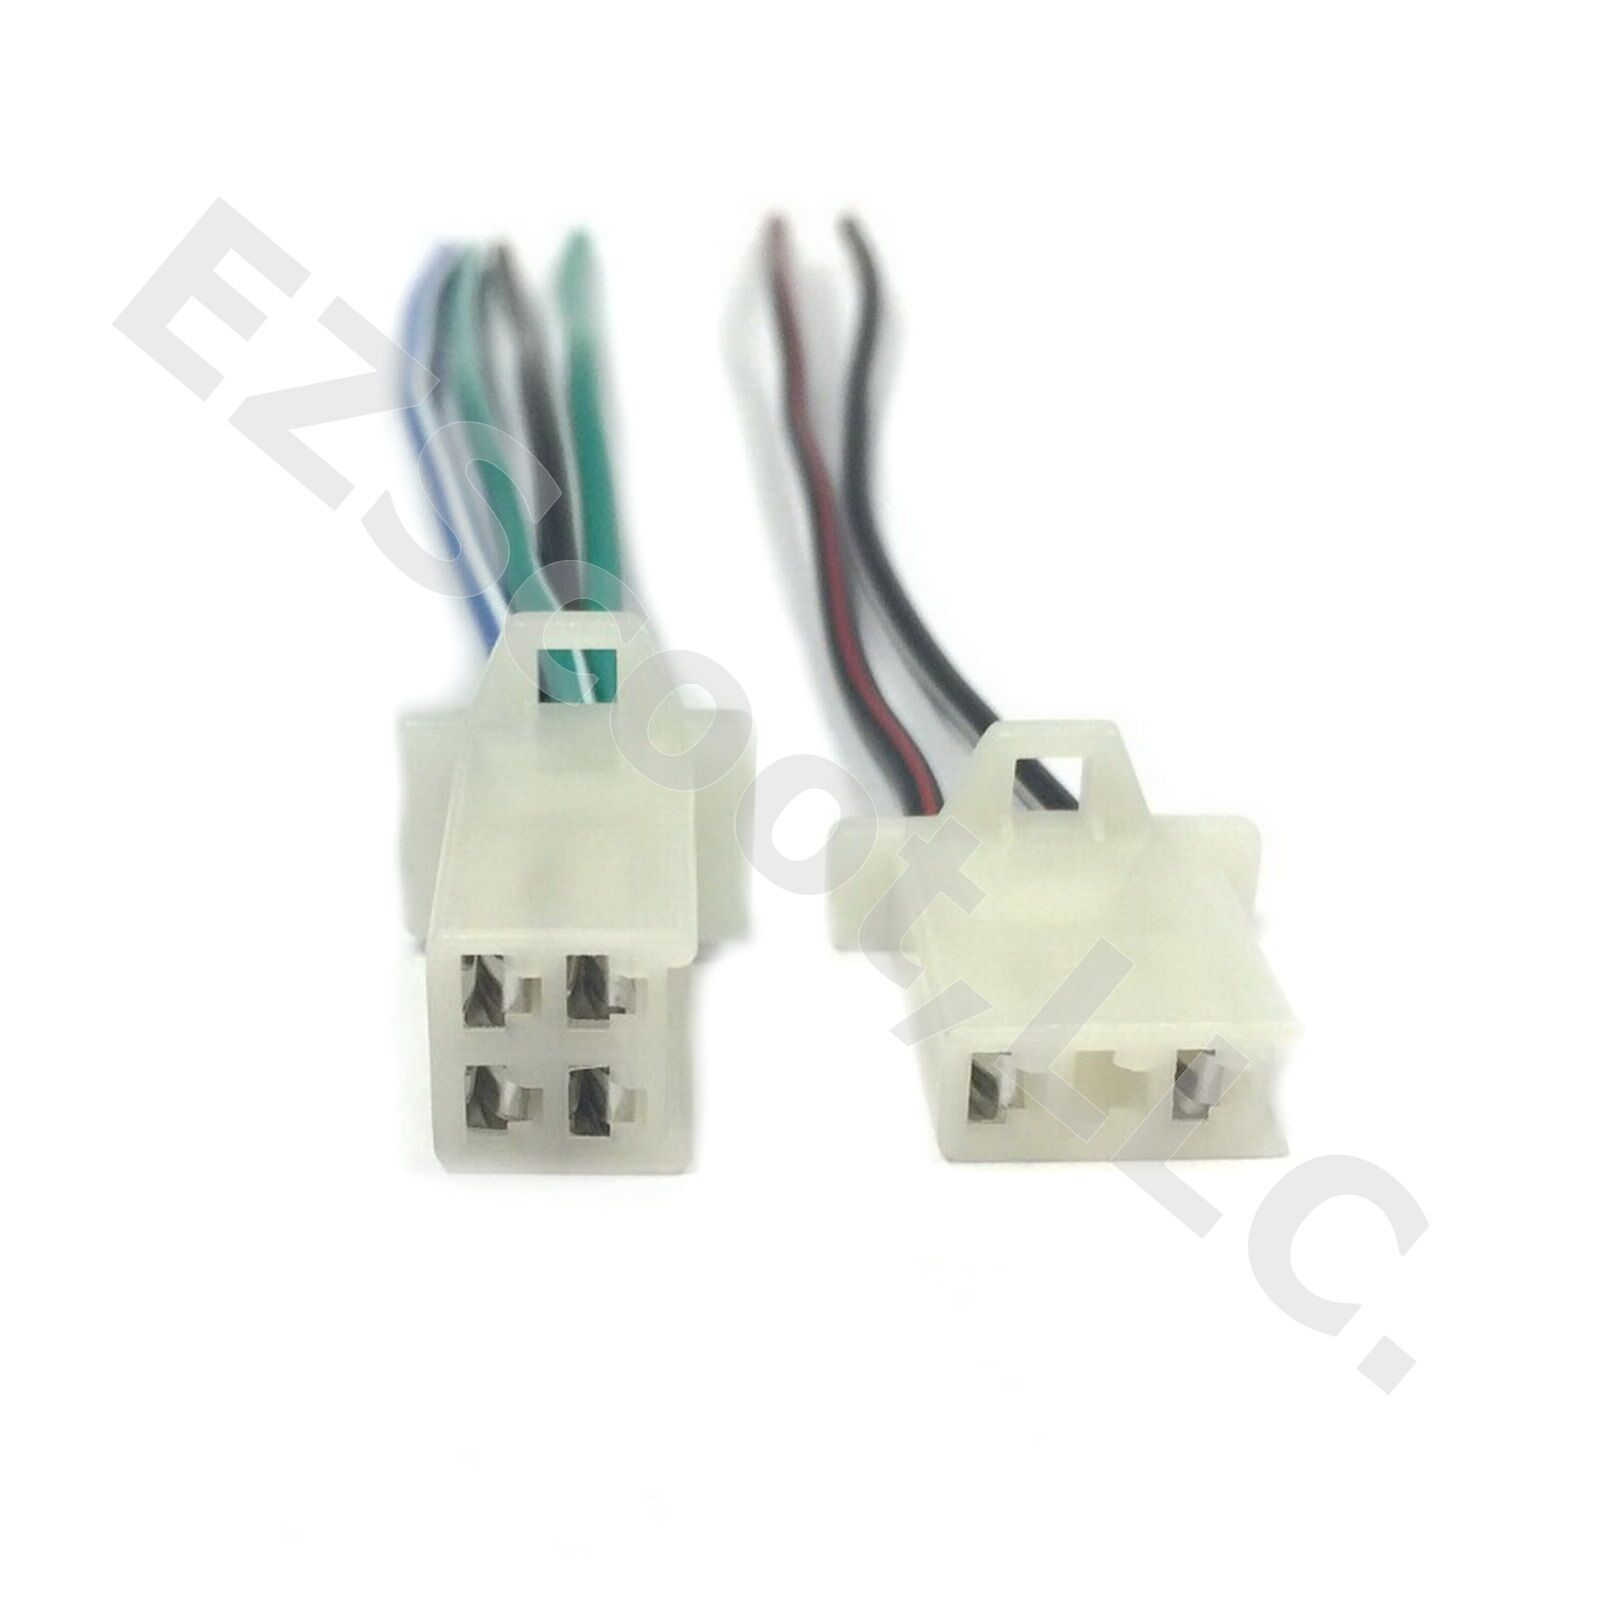 Cable Wire Harness Adapter Cdi Gy6 4 Stroke 50 150cc Scooter Moped Wiring Atv Tao 1 Of 6